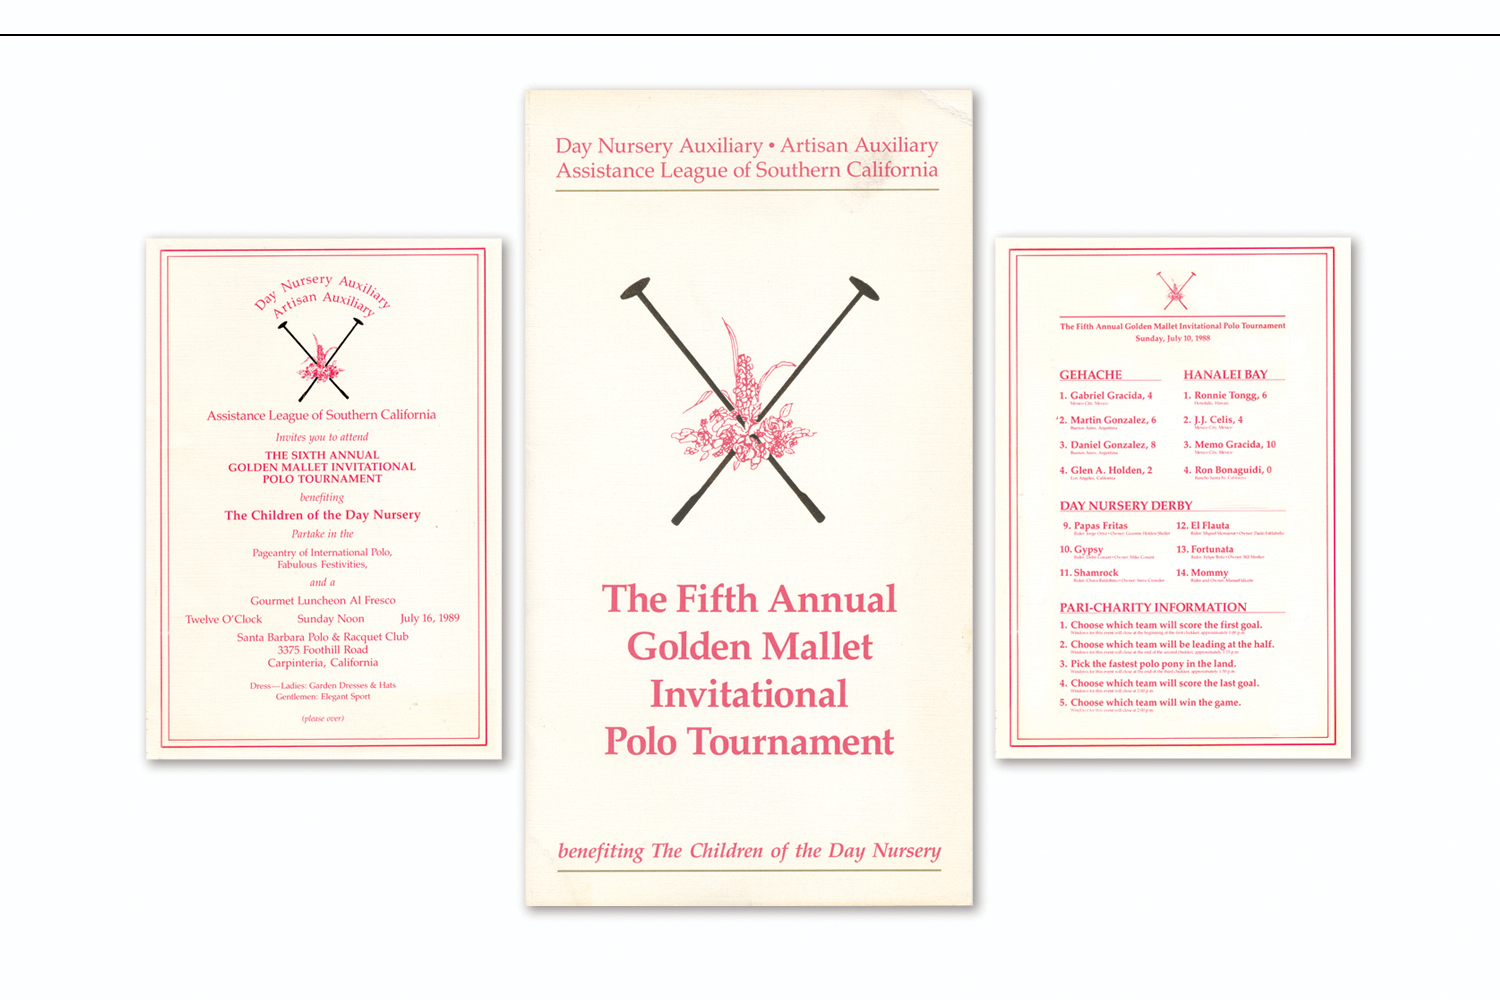 Polo Tournament   to benefit the Assistance League Day Nursery